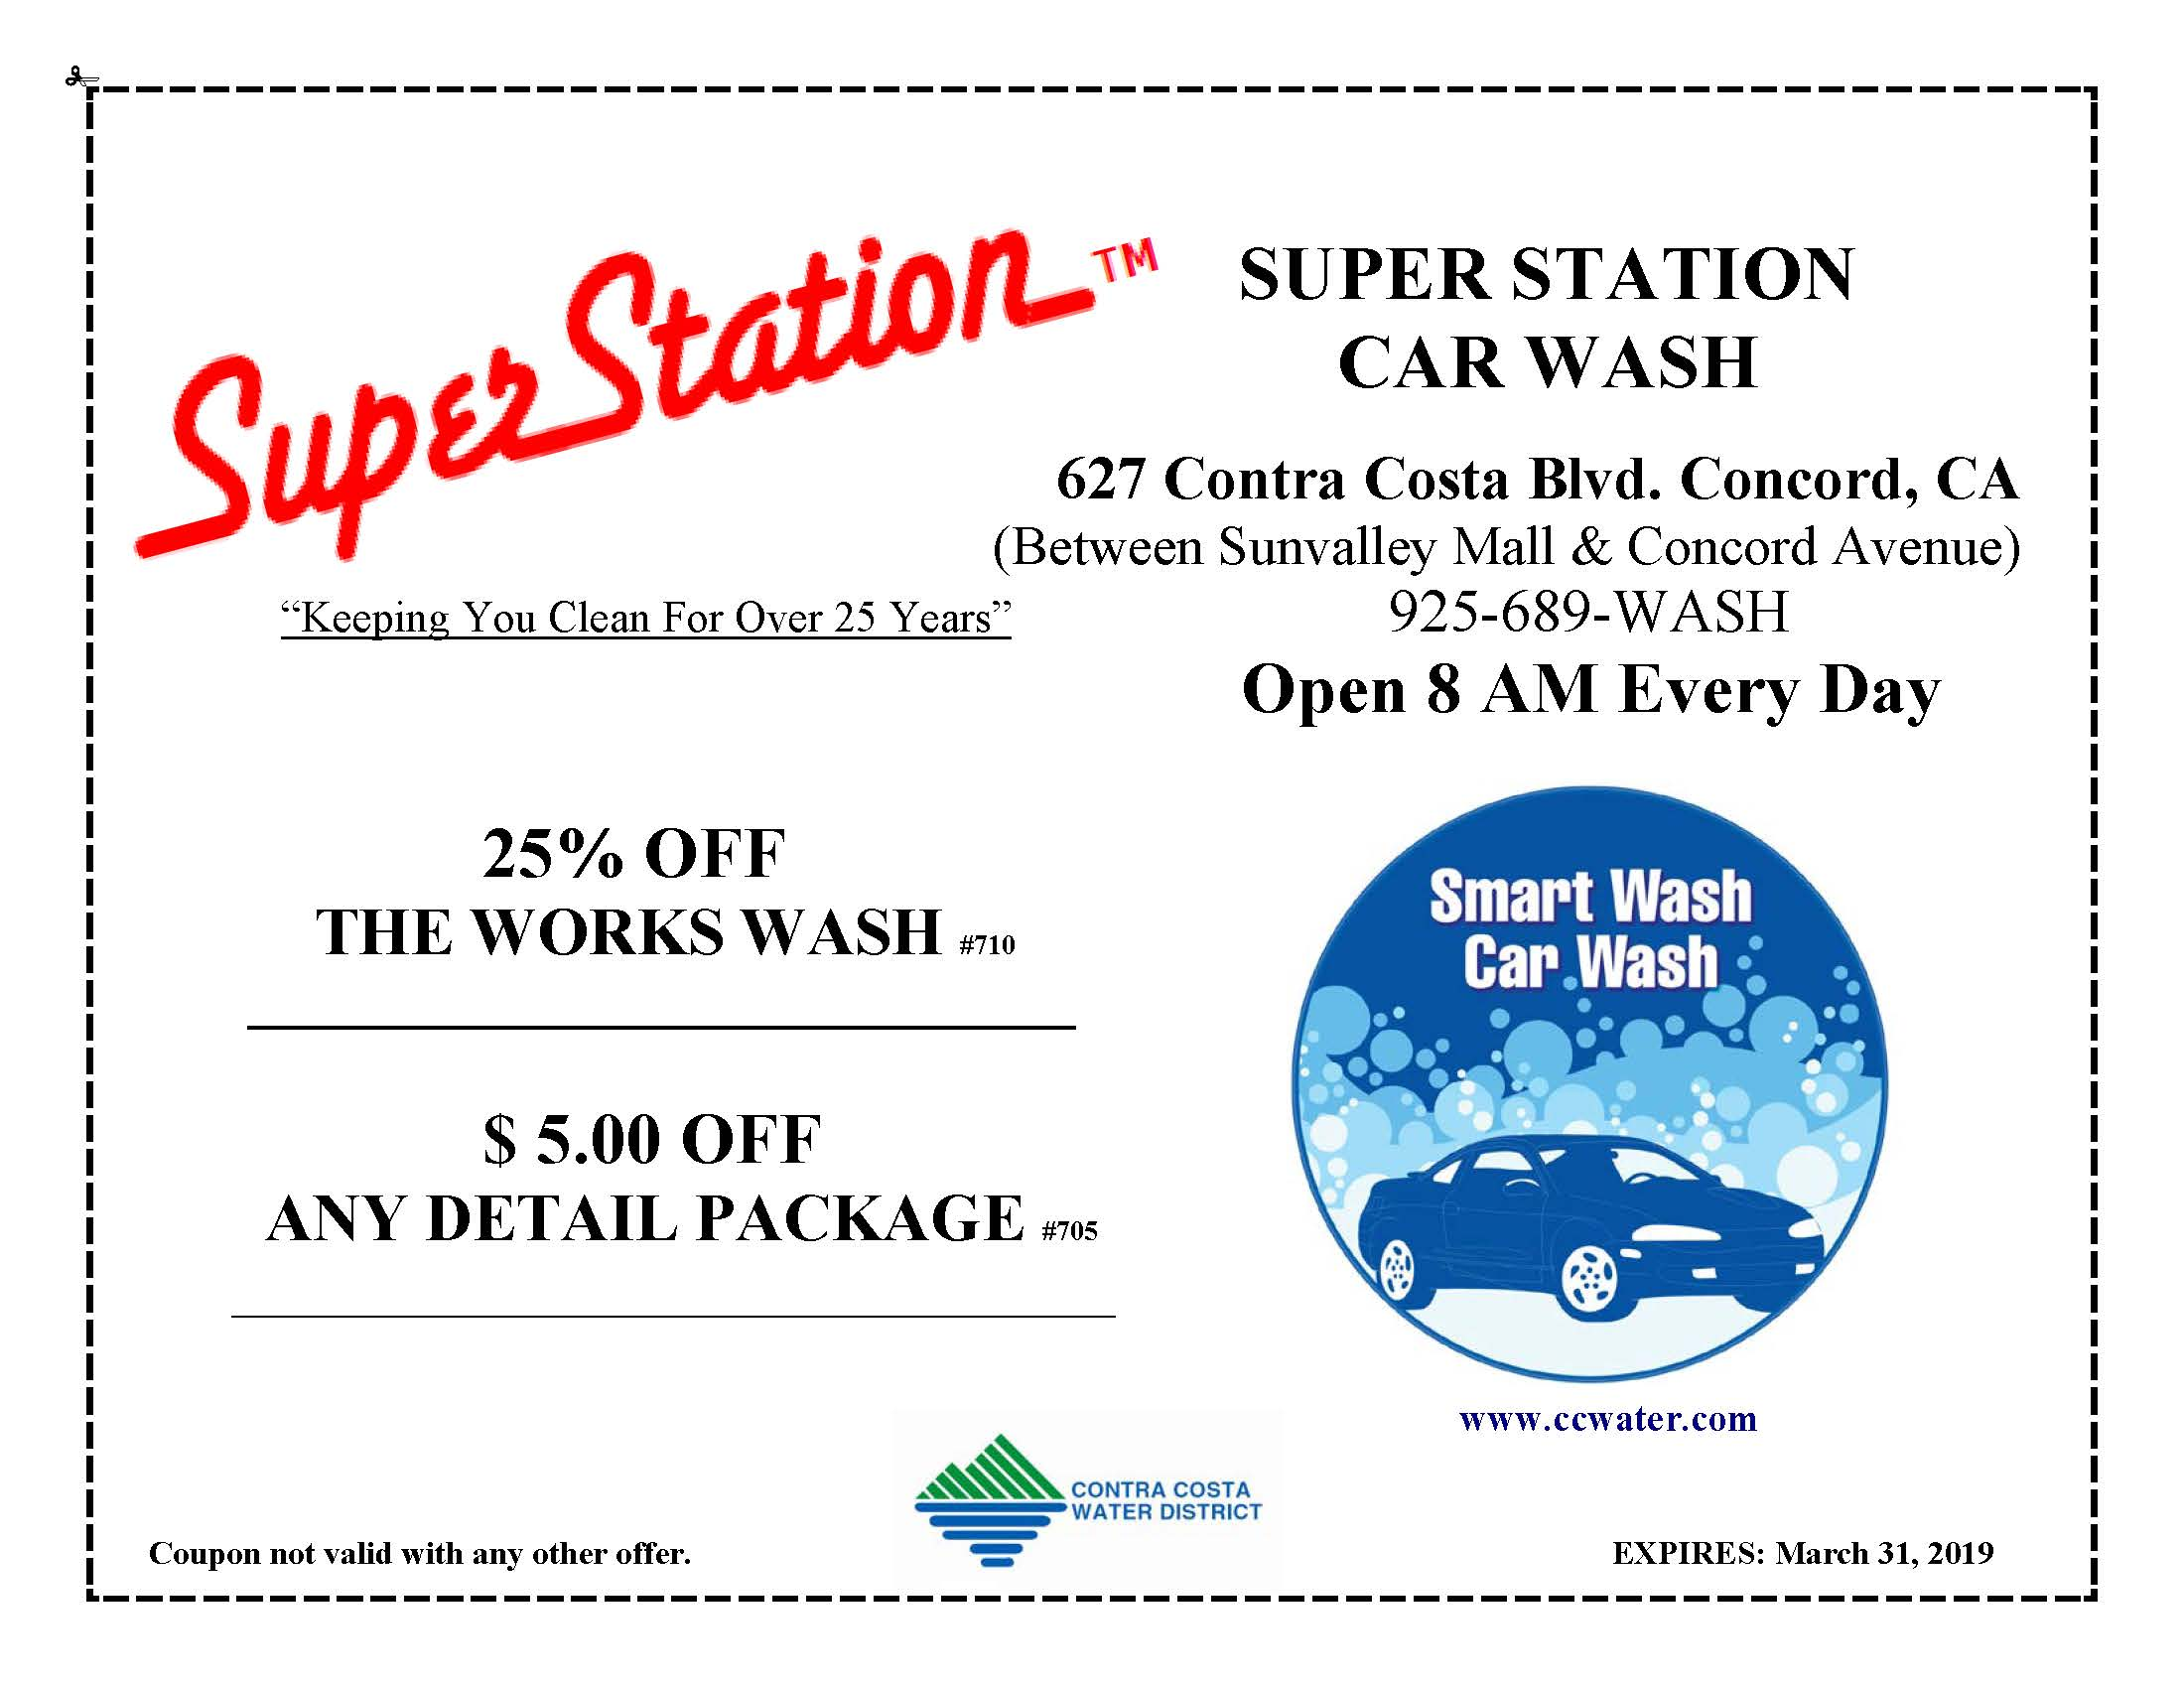 Super Station Coupon